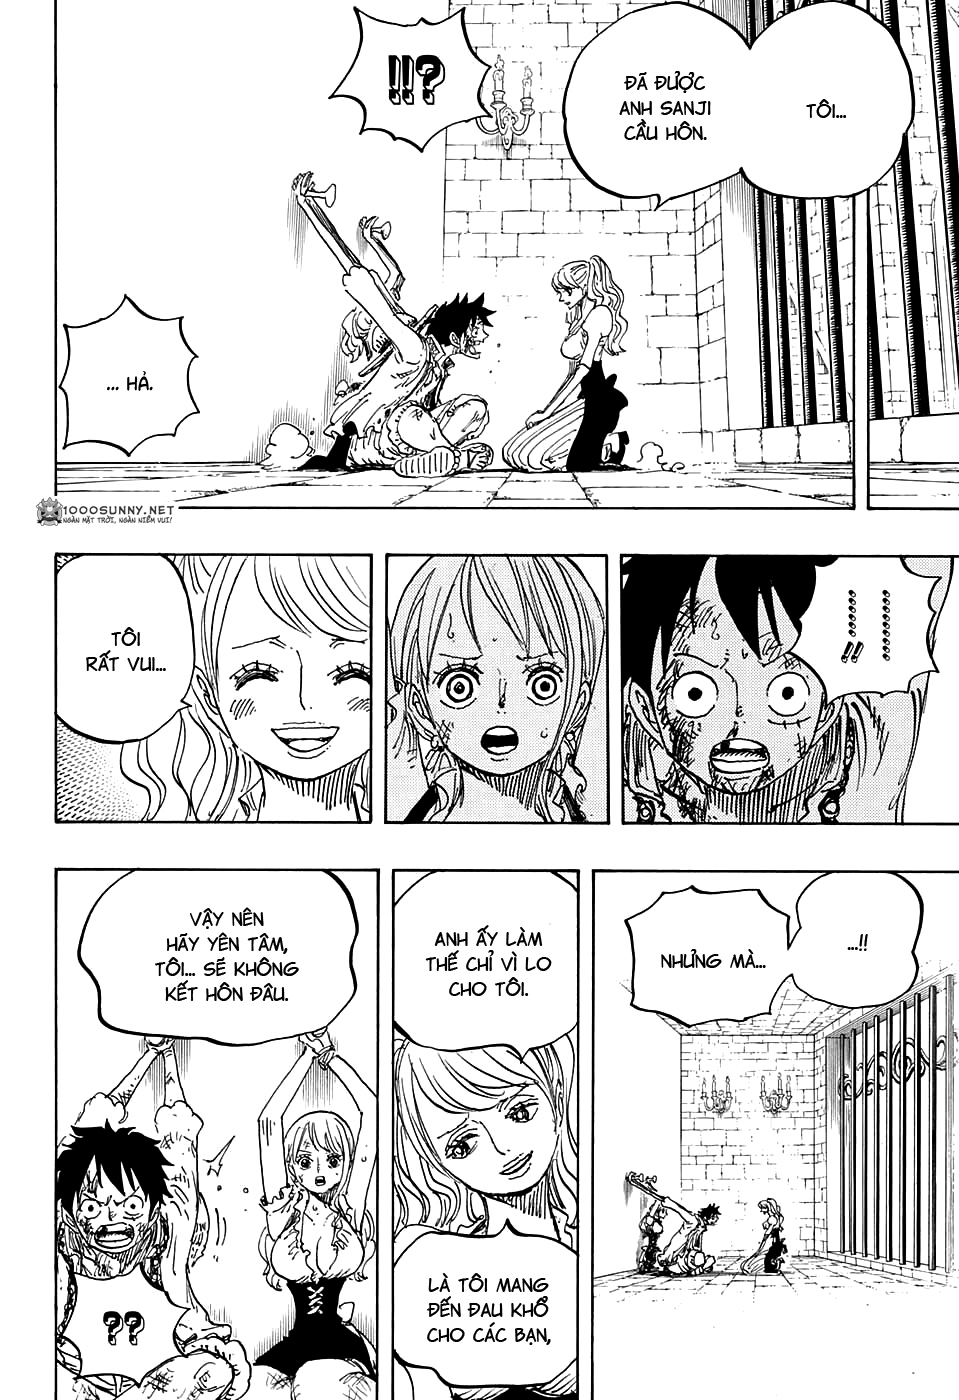 One Piece Chapter 848: Tạm biệt 021